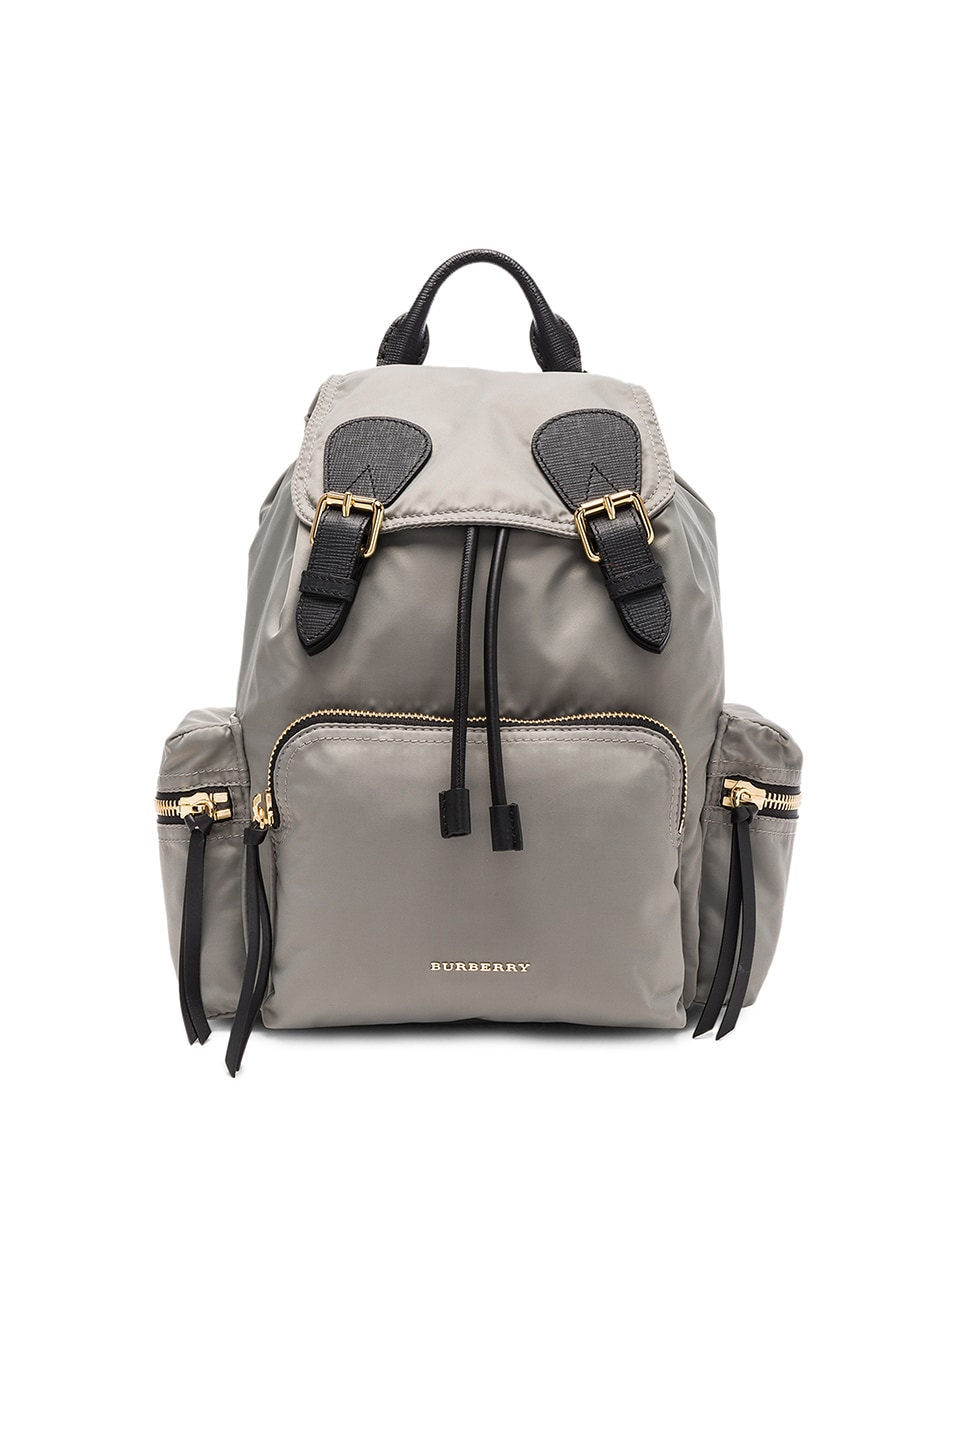 Image 1 of Burberry Medium Rucksack in Thistle Grey